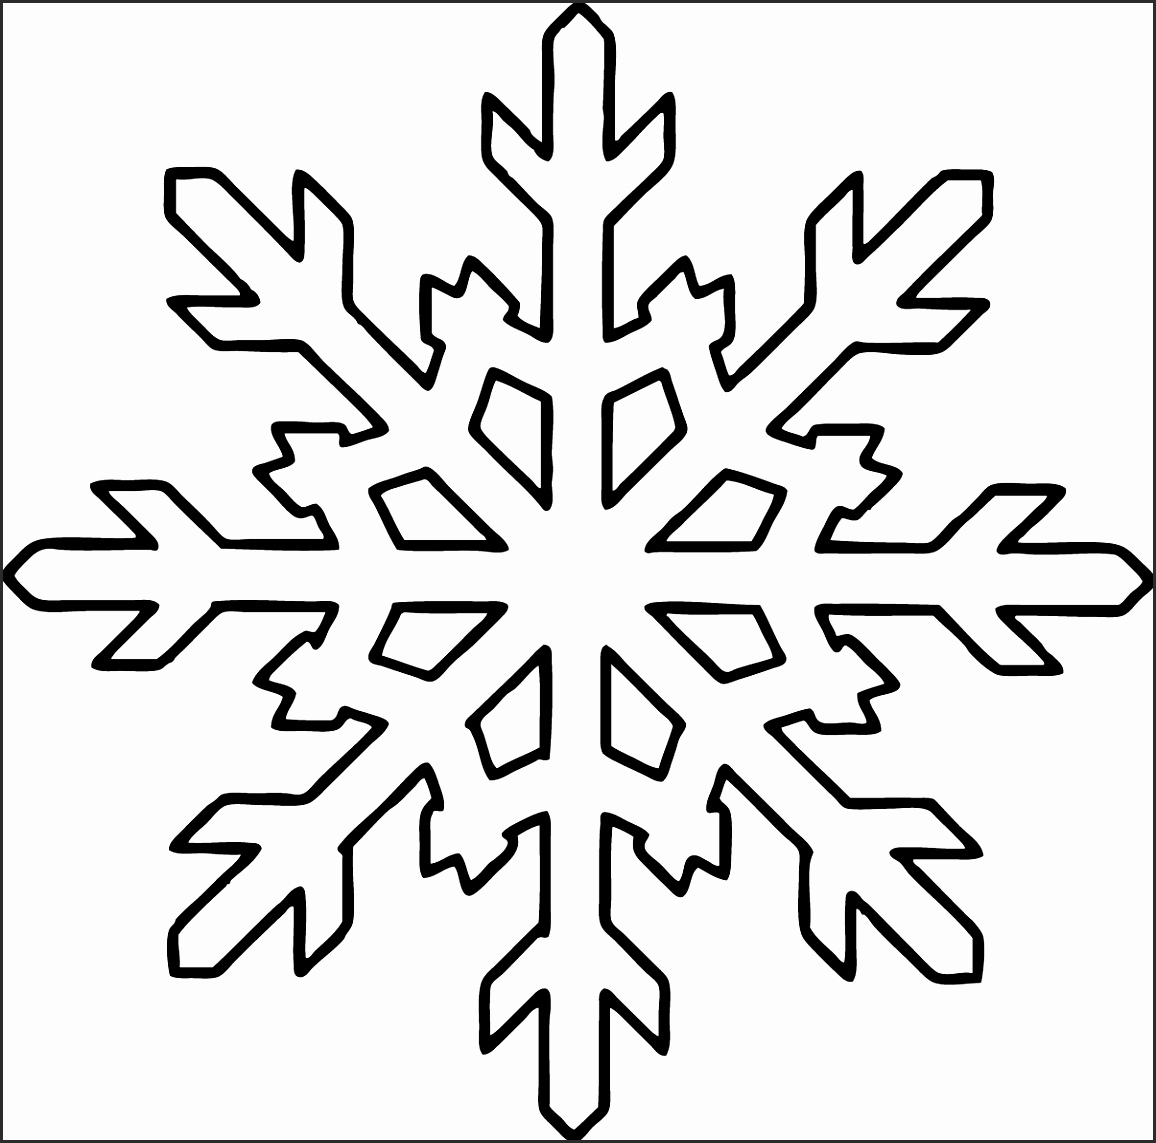 Snowflake Easy Drawing At Getdrawings